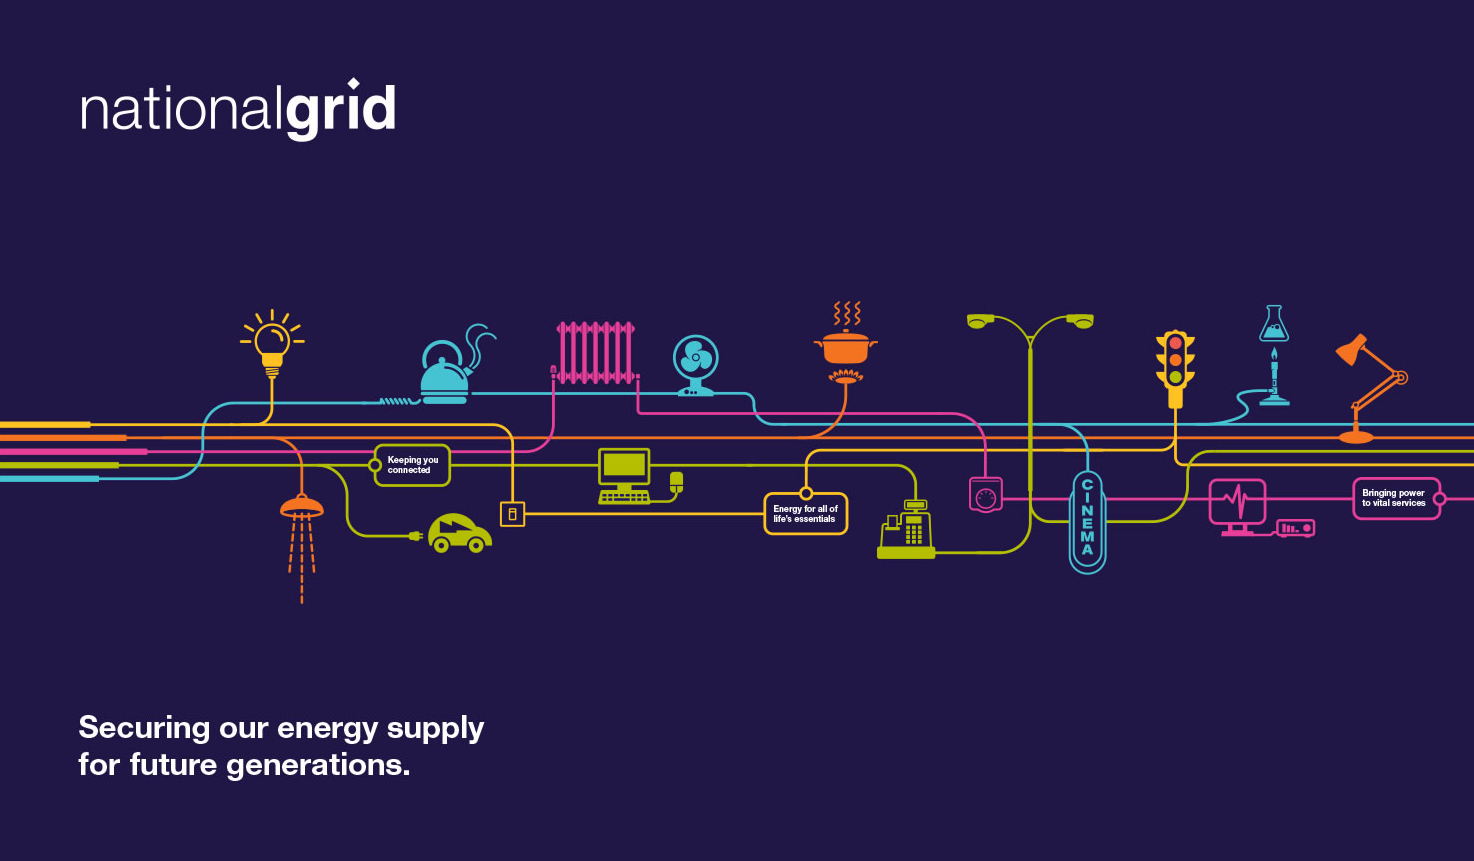 Energy branding and infographics from simplify branding for energy branding and infographics from simplify branding for national grid httpsimplifybranding biocorpaavc Image collections